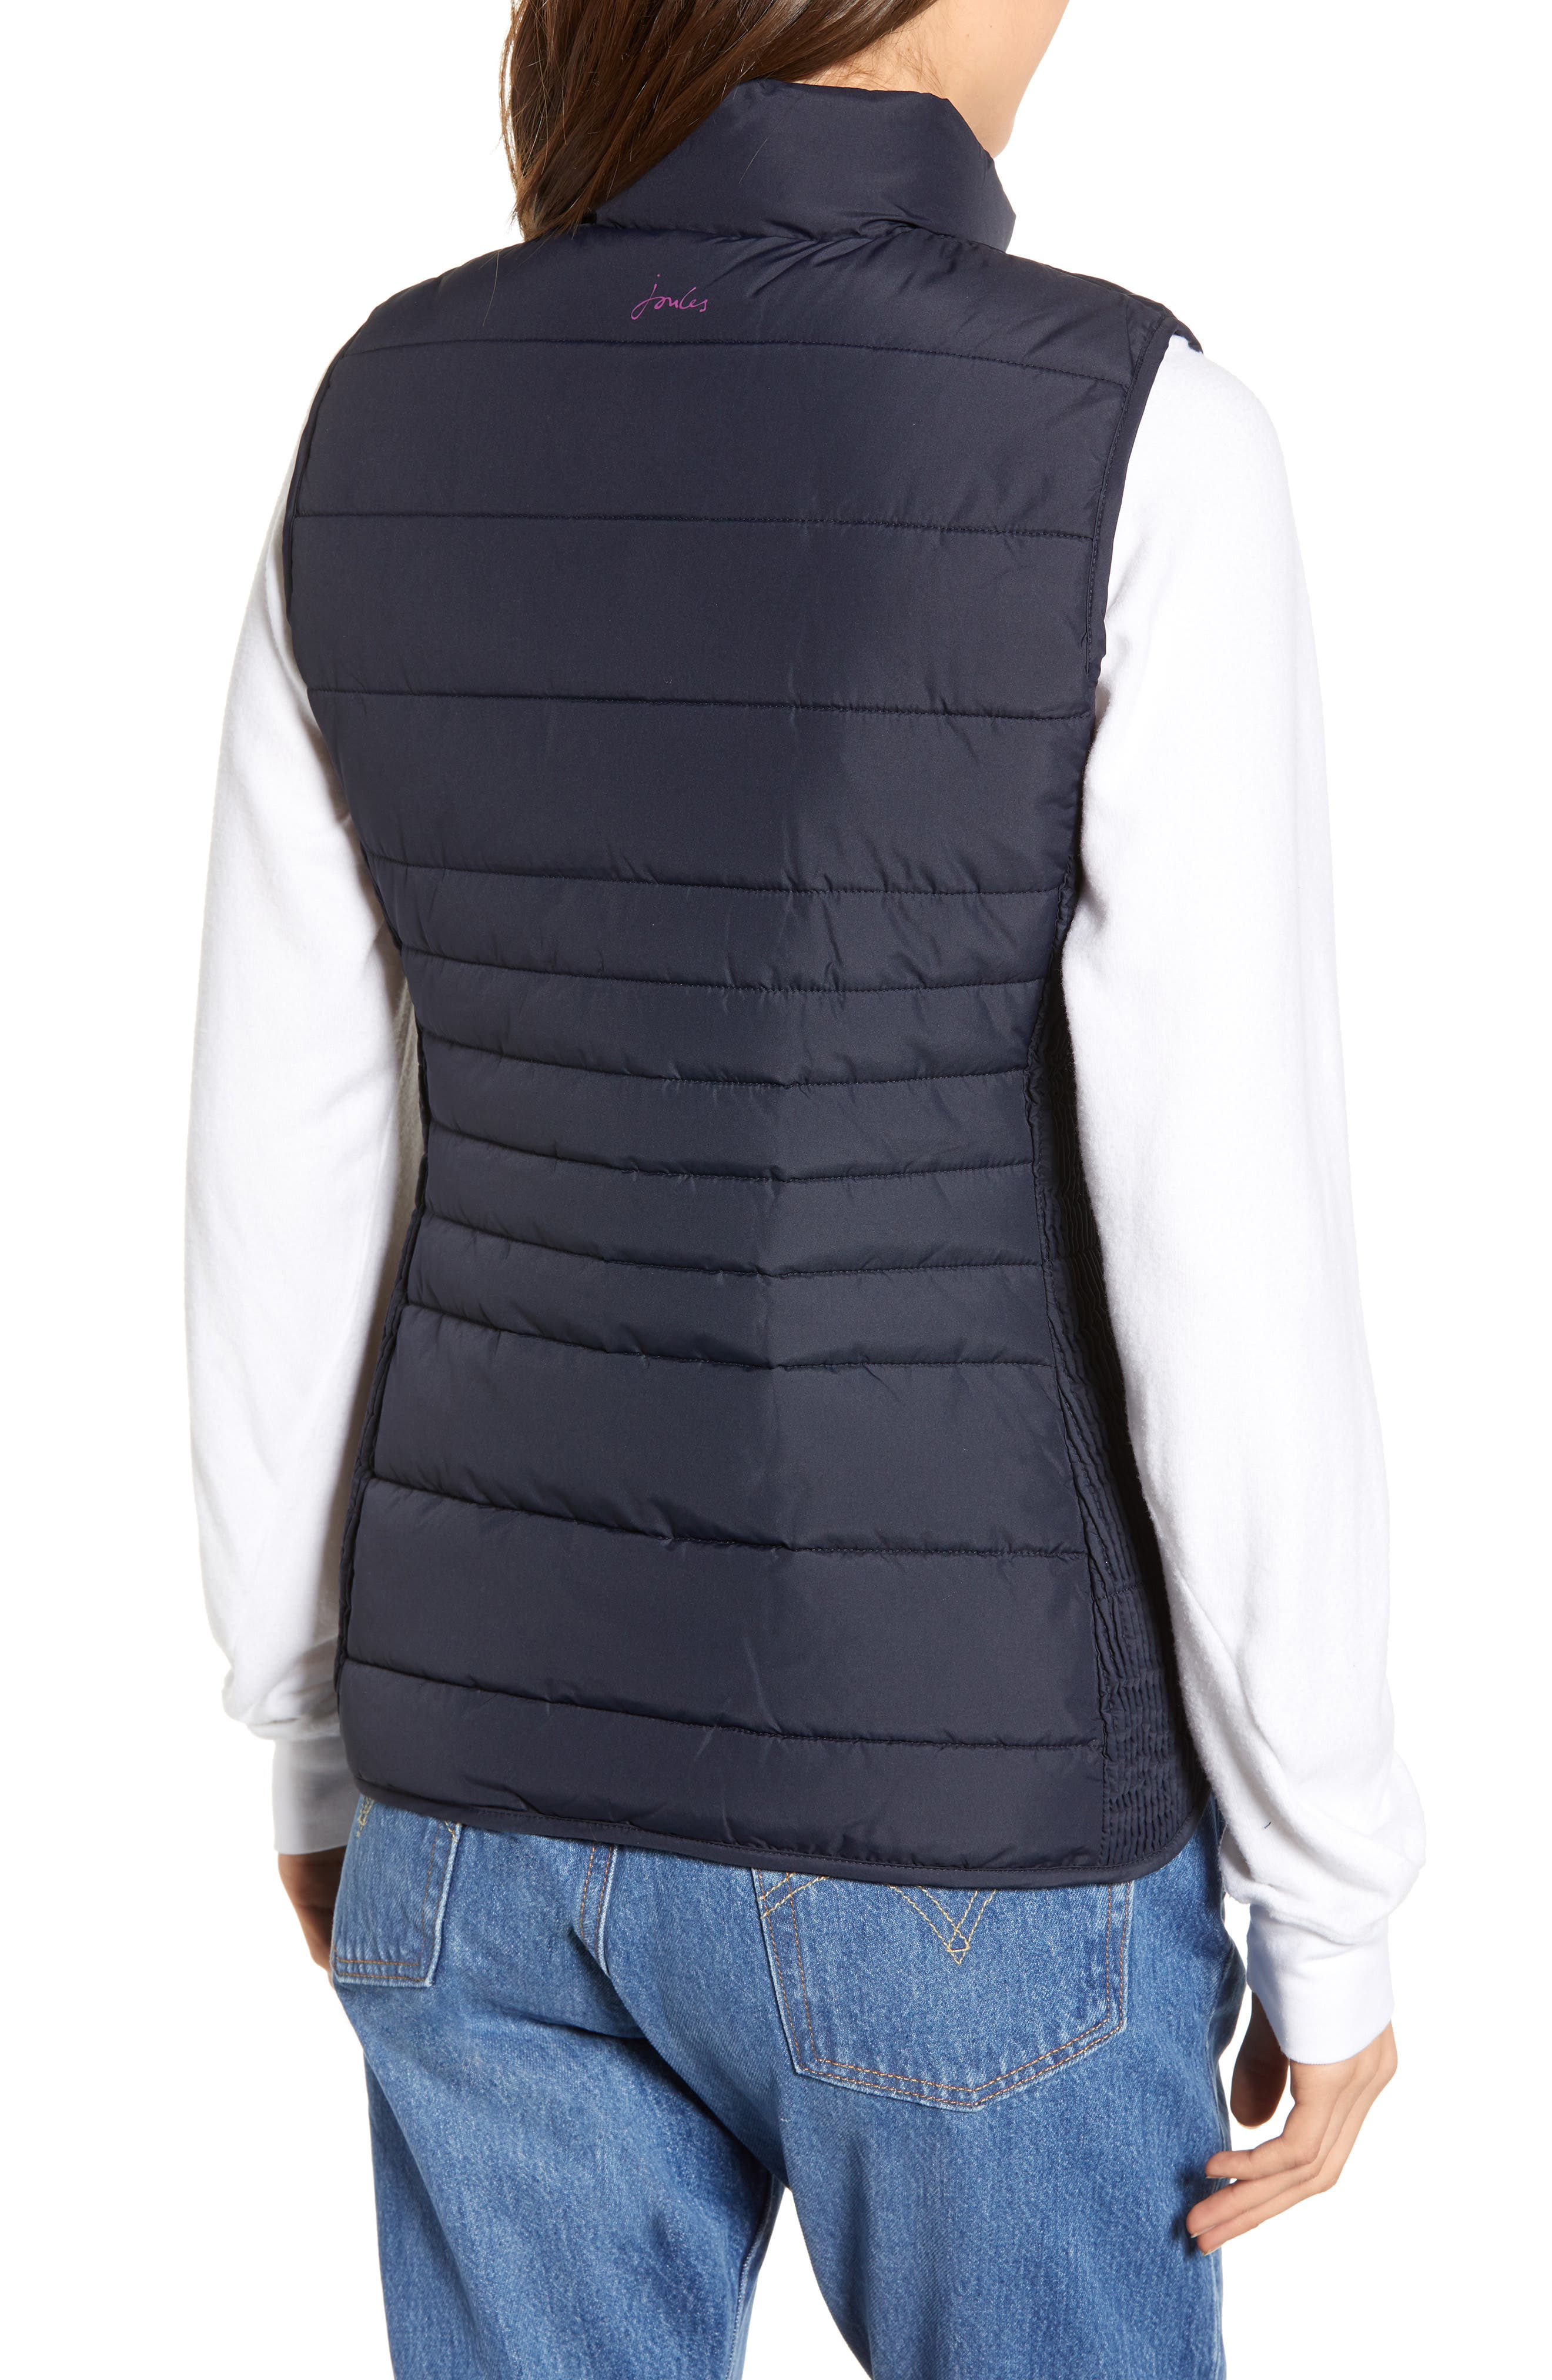 9e53afe69 Women's Joules Coats & Jackets | Nordstrom